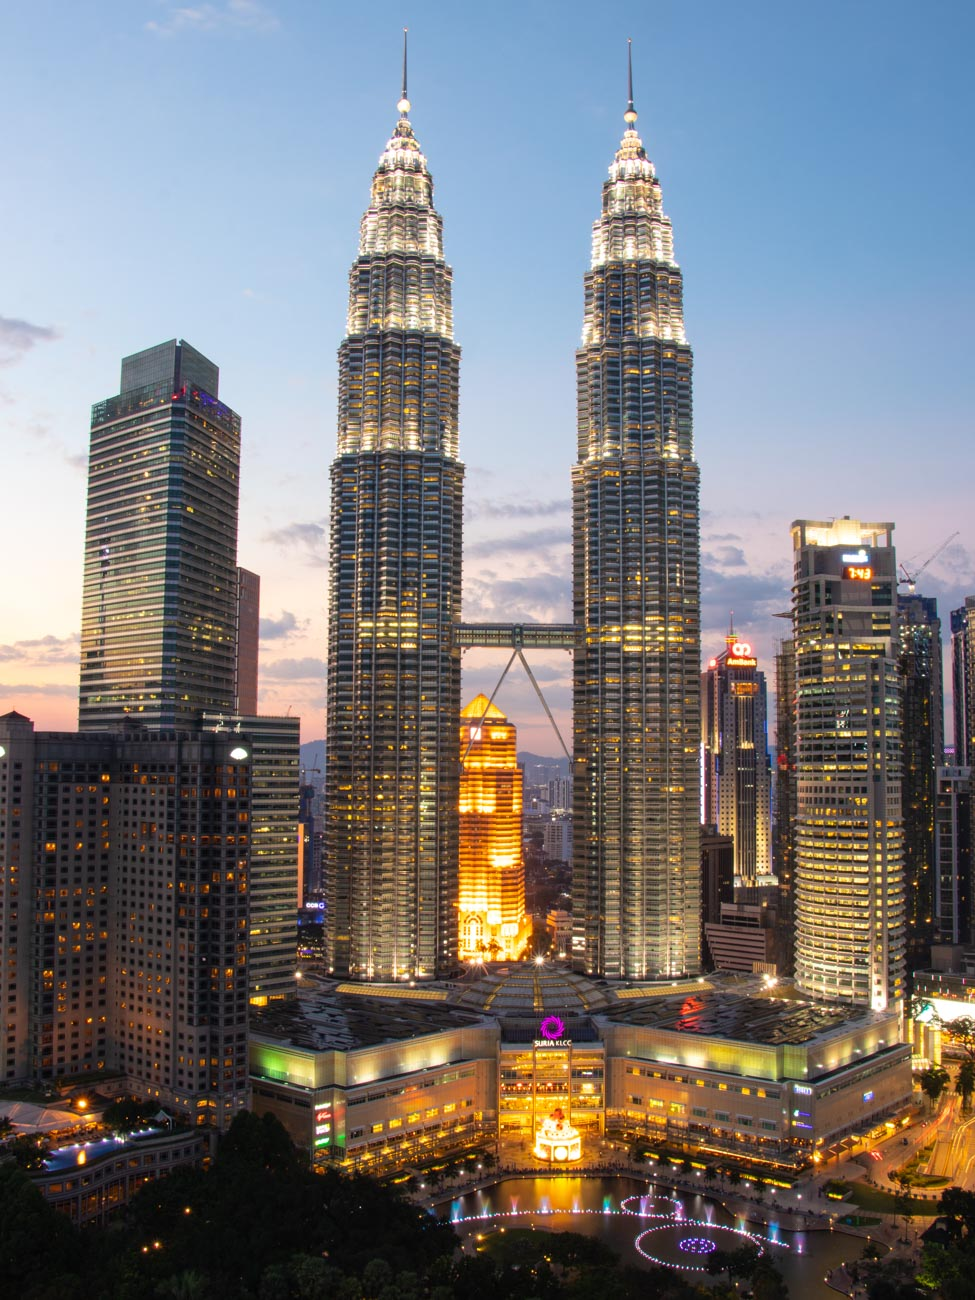 Views of the Petronas Twin Towers from SkyBar Traders - things to do in Kuala Lumpur